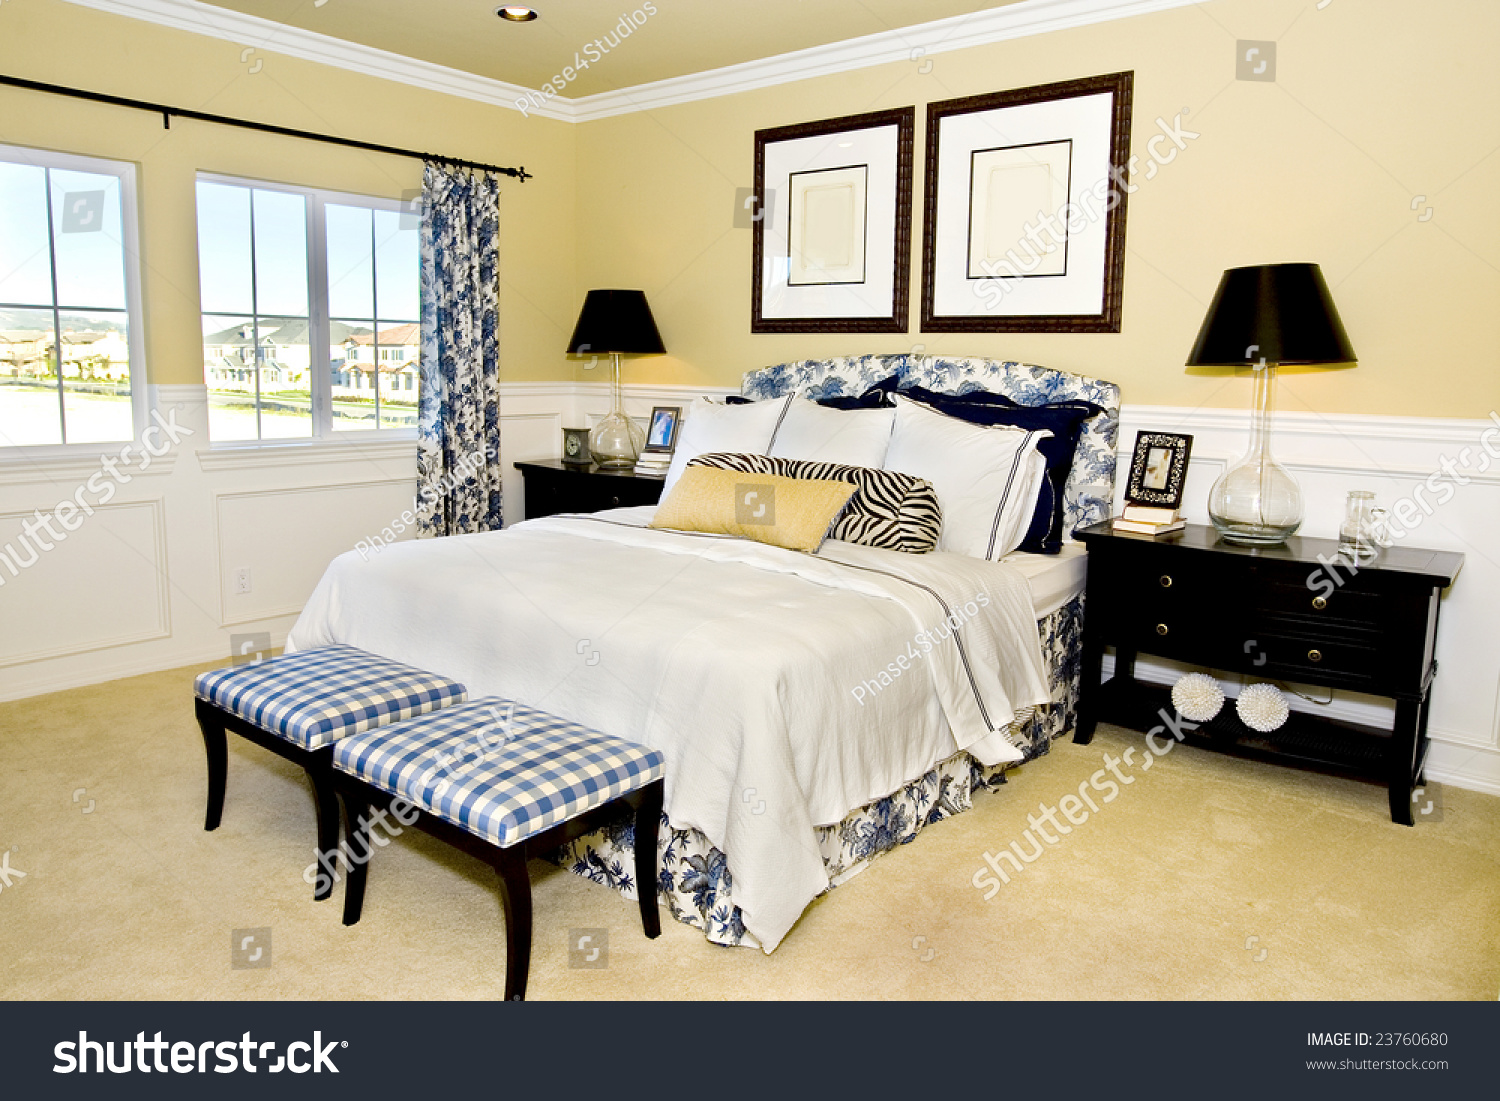 Master Bedroom Traditional Traditional Master Bedroom Stock Photo 23760680 Shutterstock